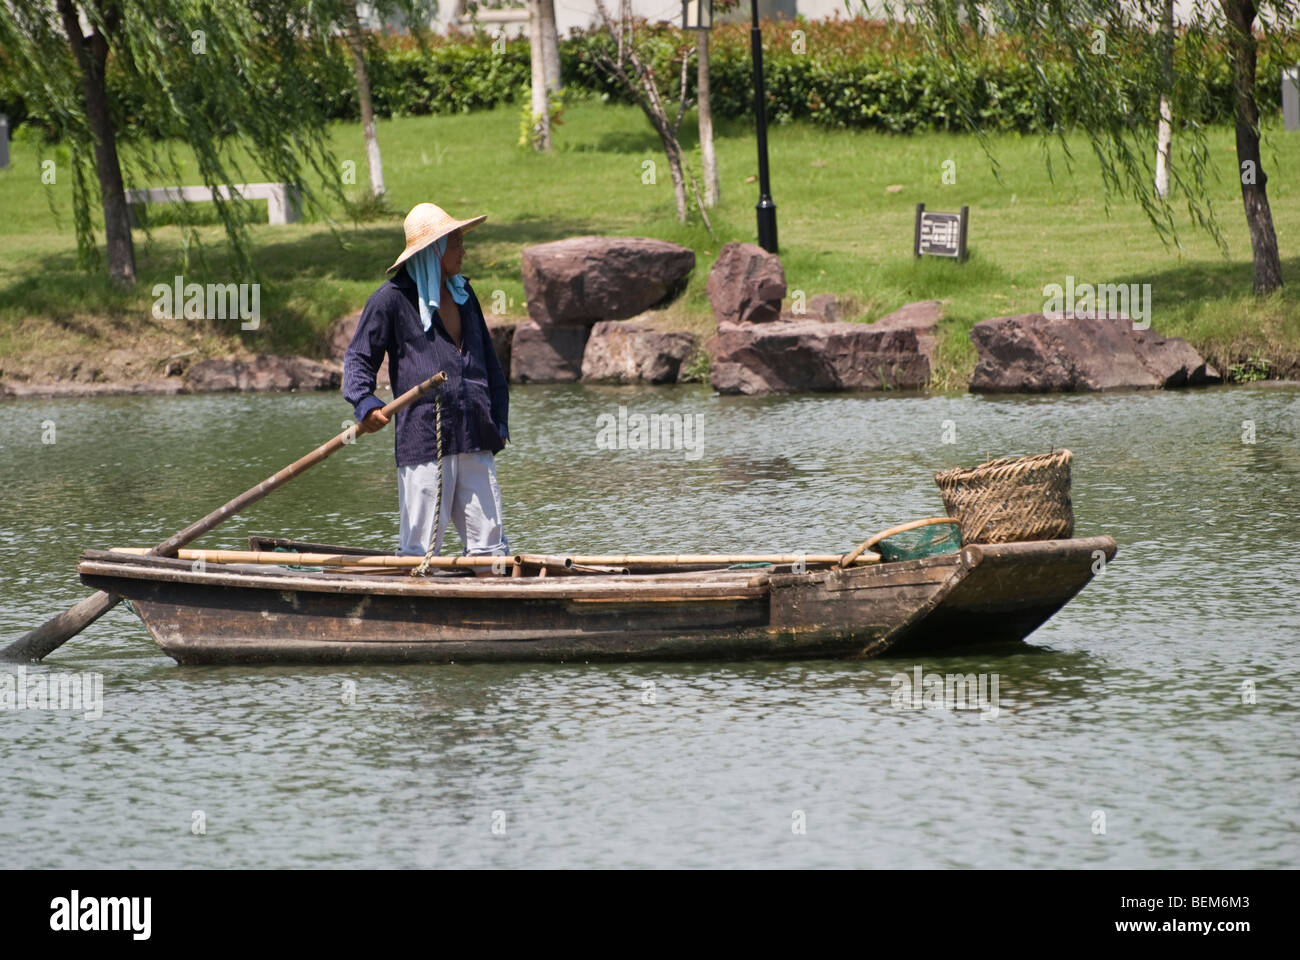 Man in a ancient wooden boat in a river of Xitang Xitang is an ancient scenic town in Jiashan County, Zhejiang Province, Stock Photo